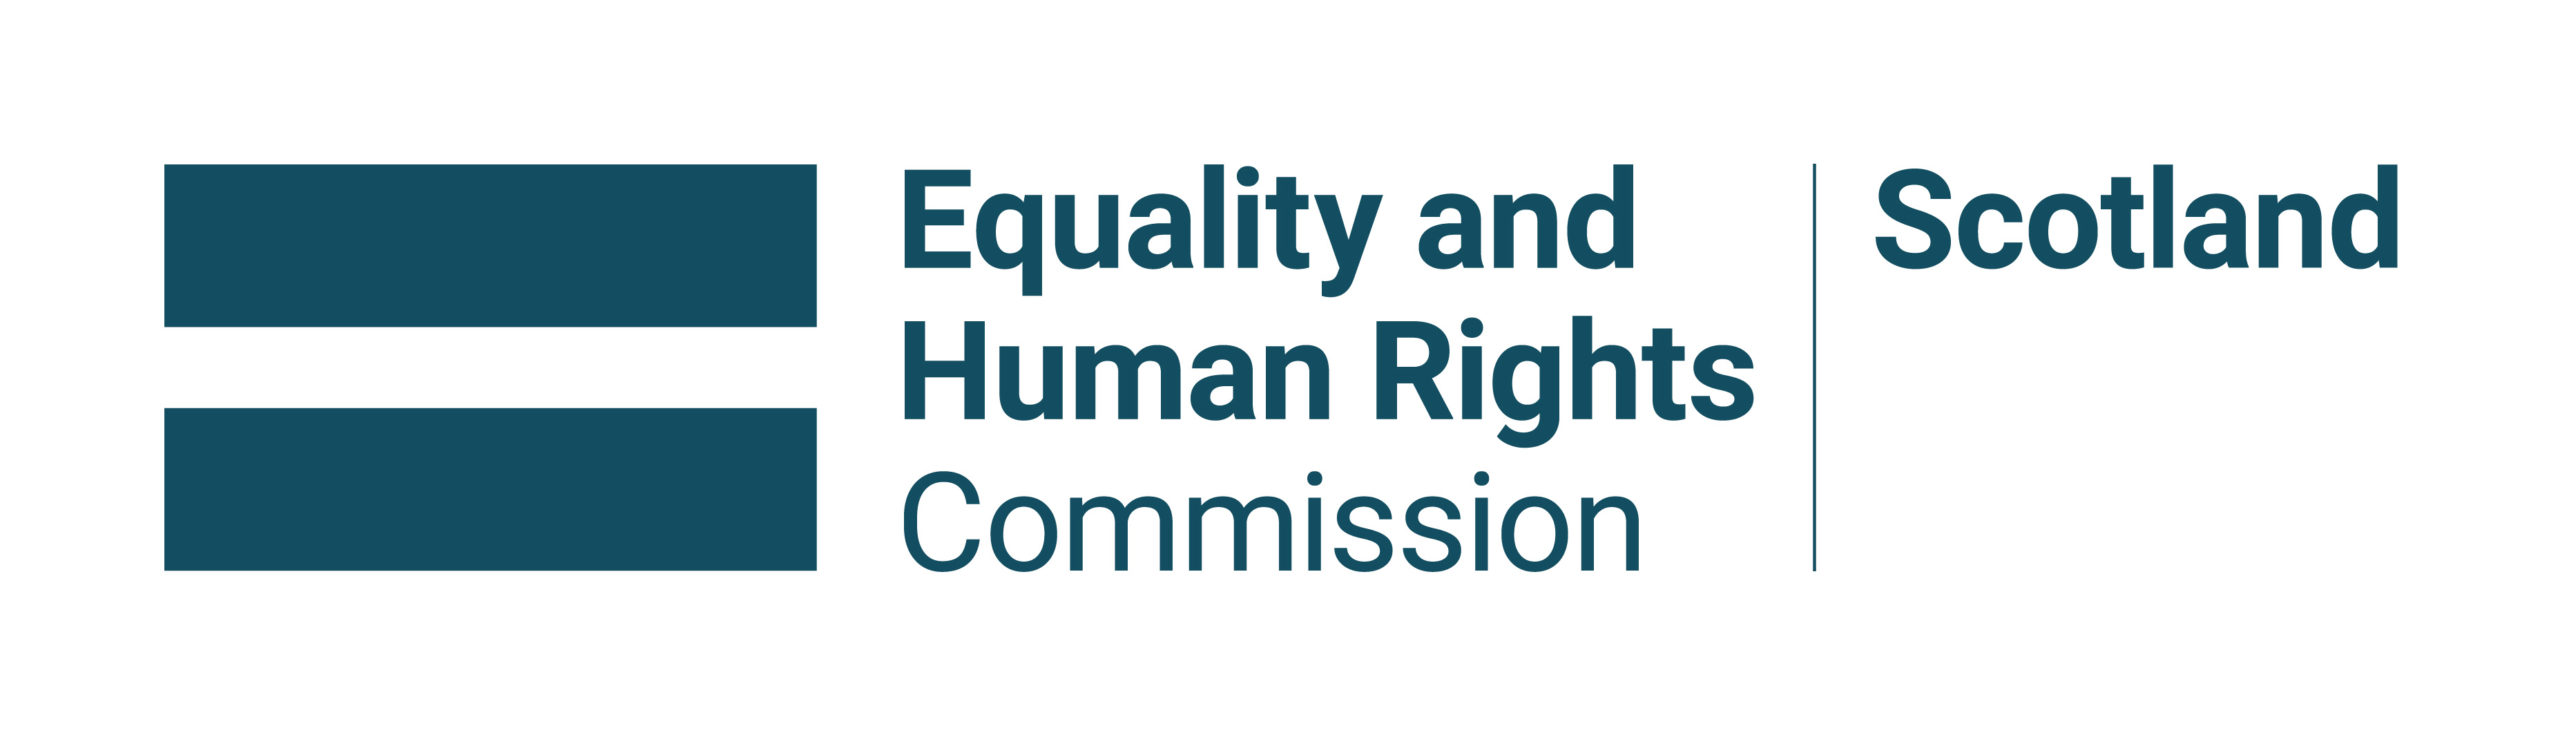 Equality and Human Rights Commission Scotland Logo